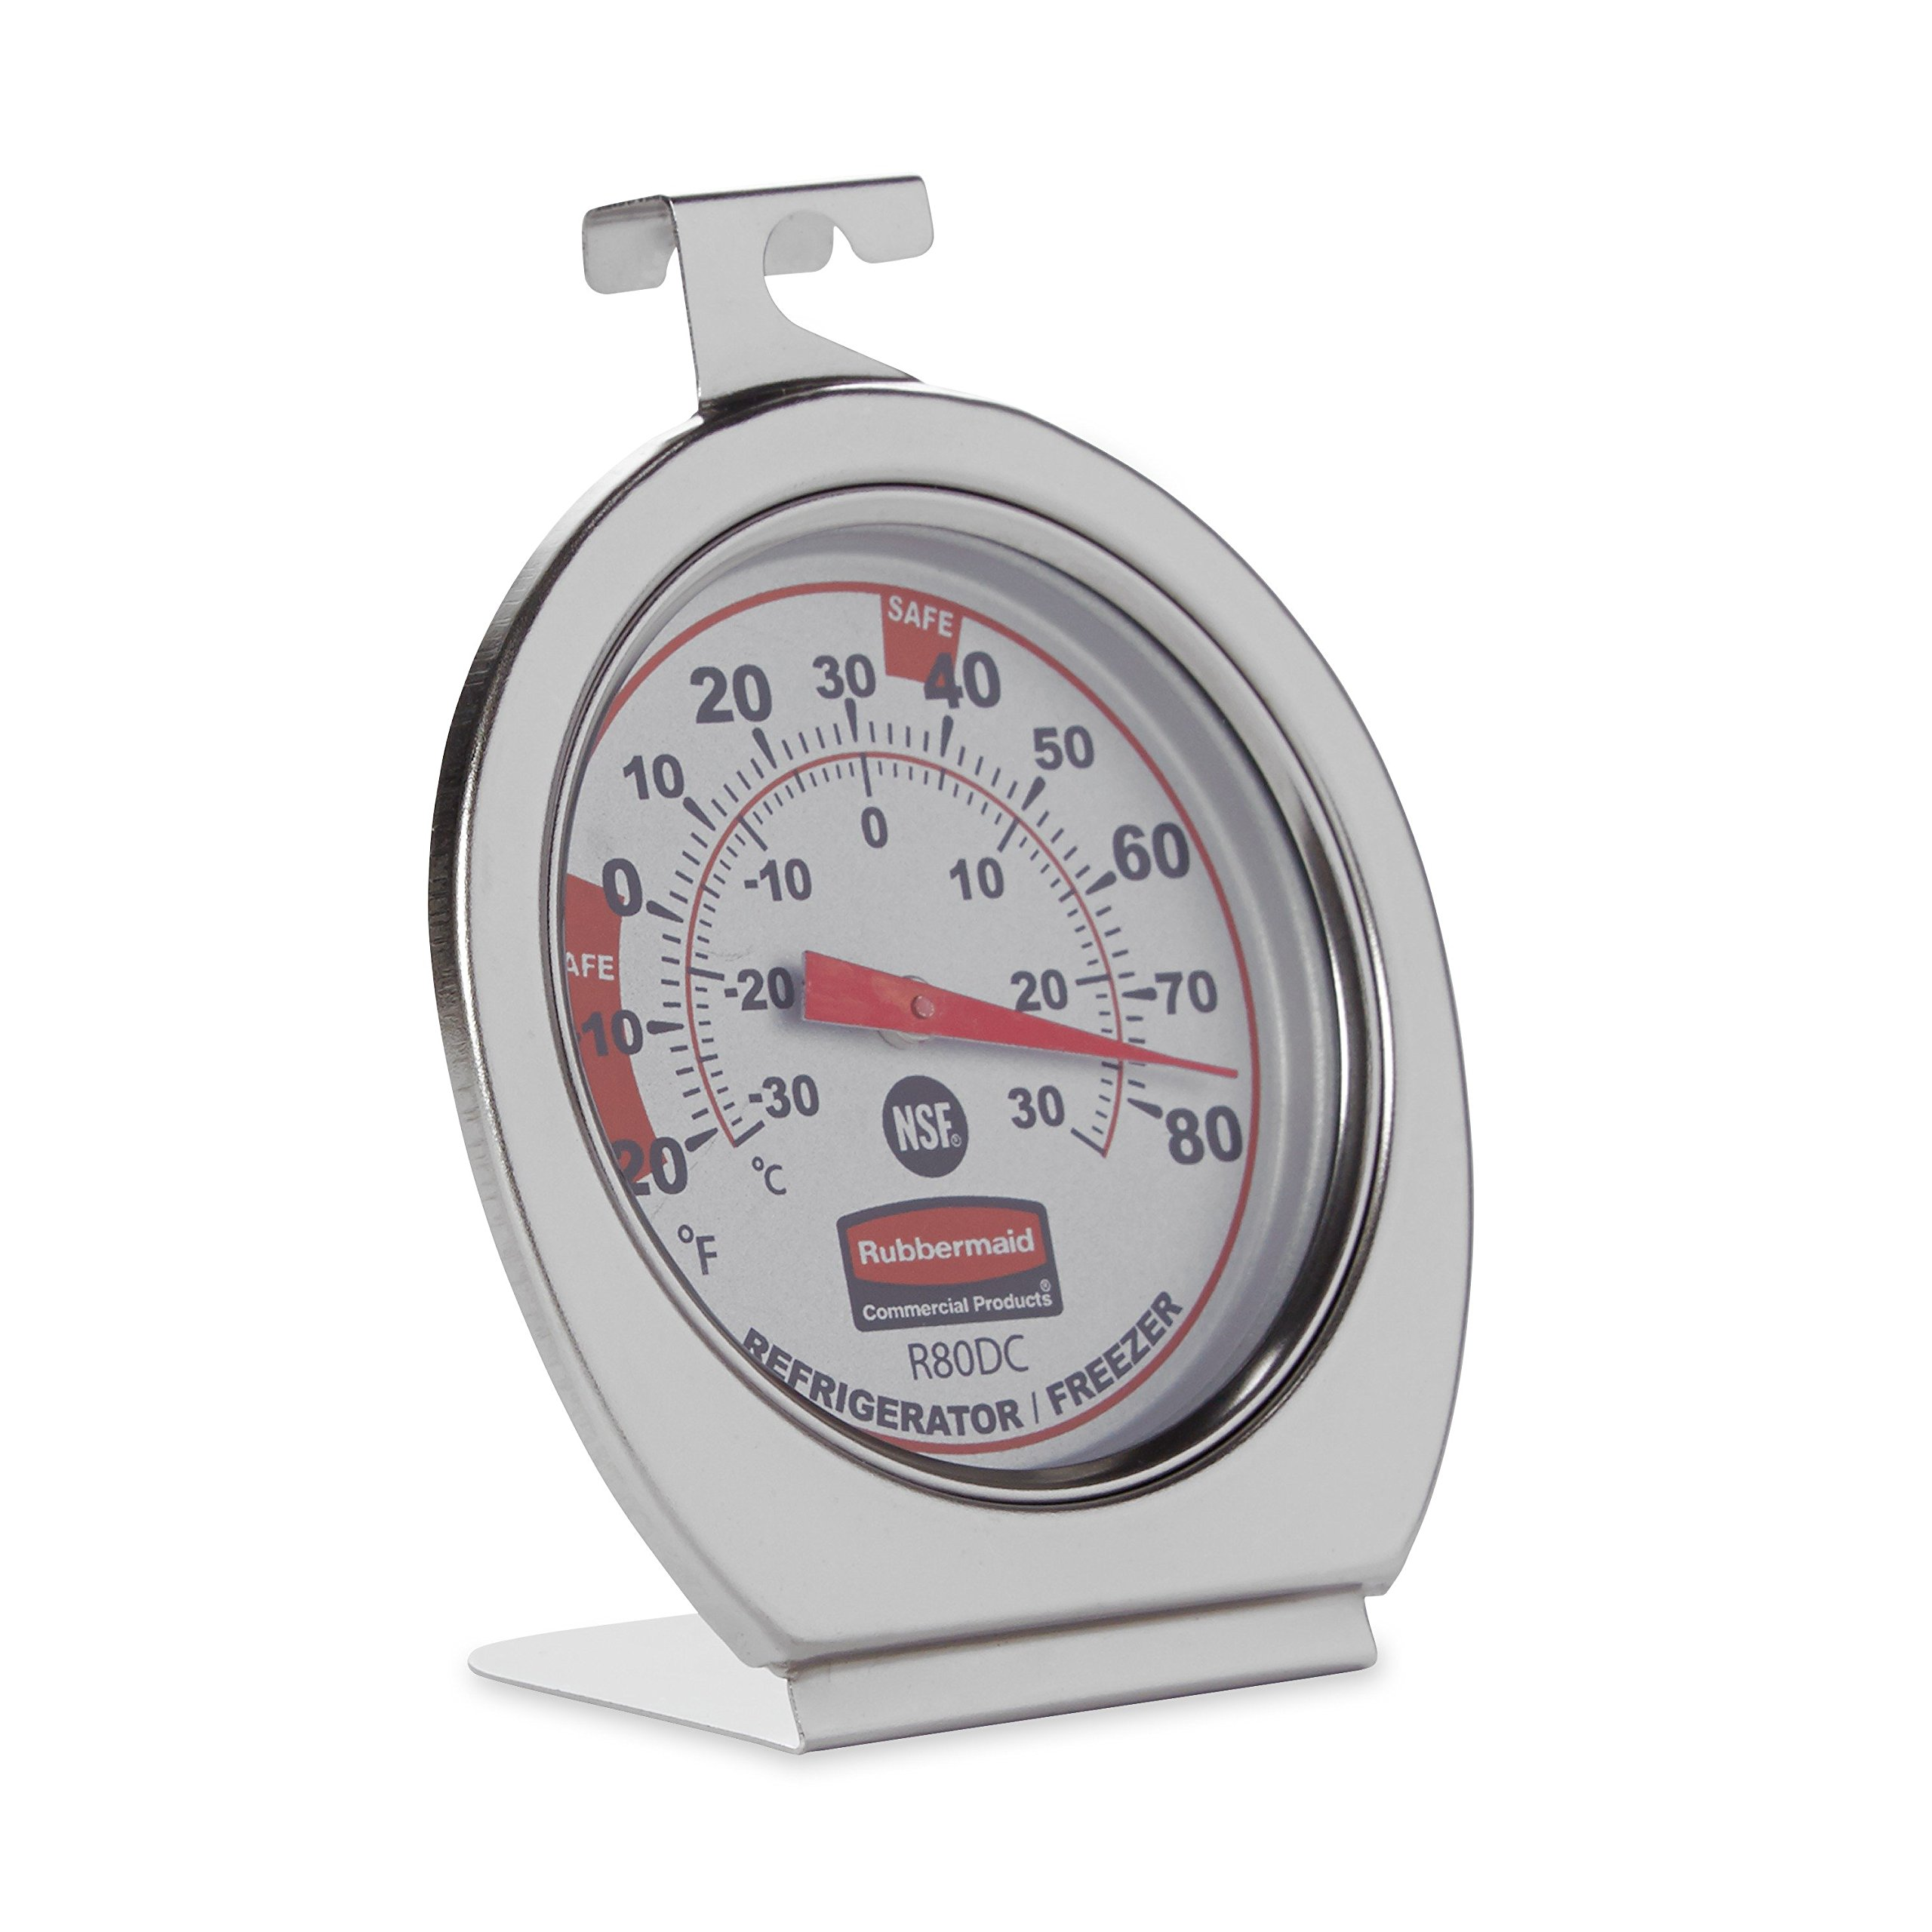 Rubbermaid Commercial Refrigerator/Freezer Thermometer, Stainless Steel